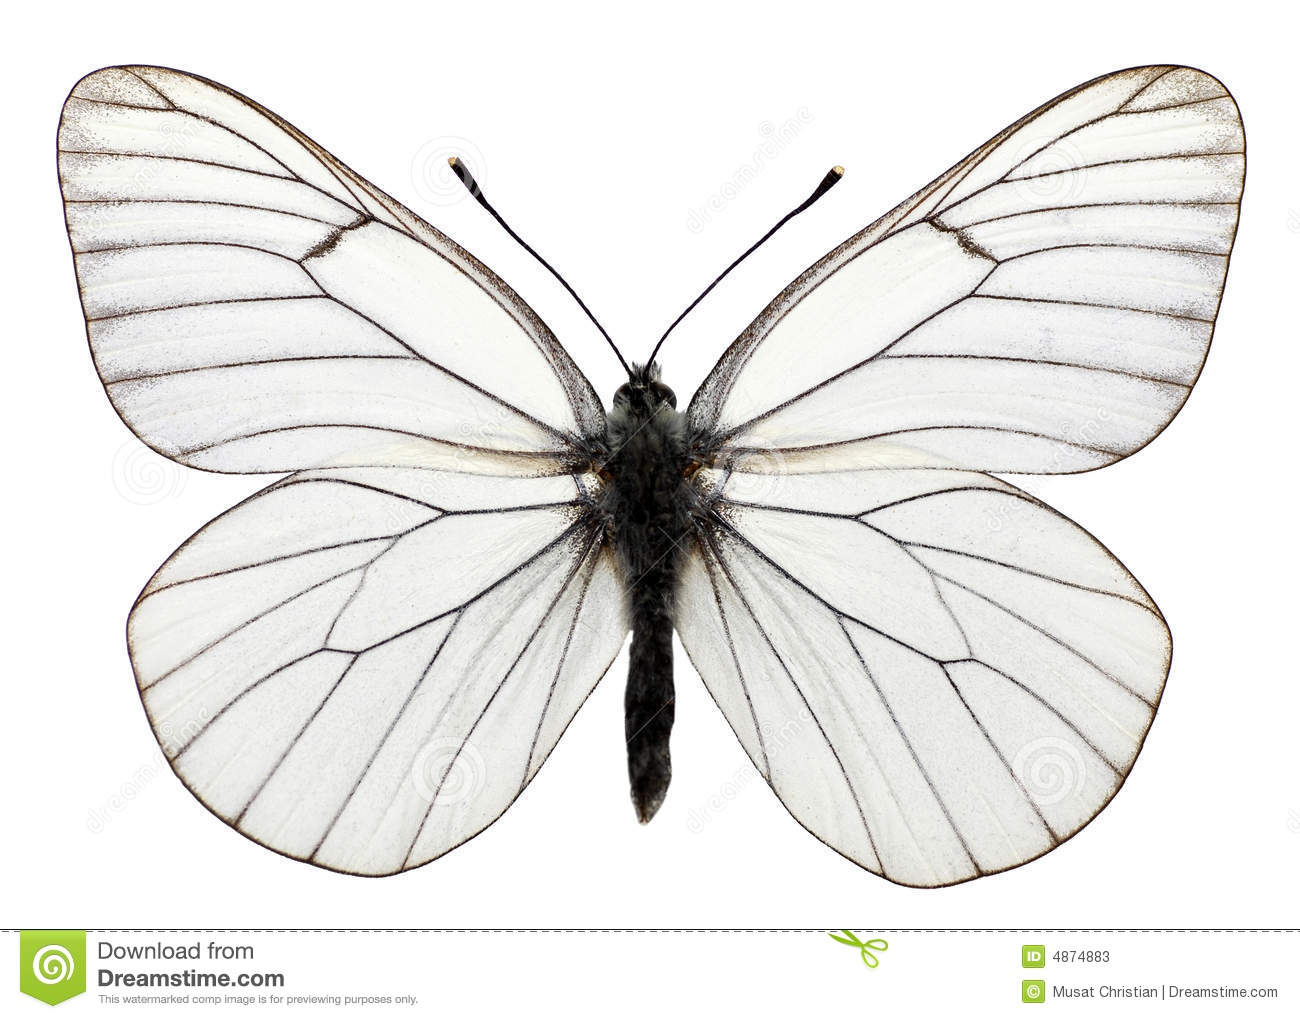 Isolated Black Veined Butterfly Stock Photos.